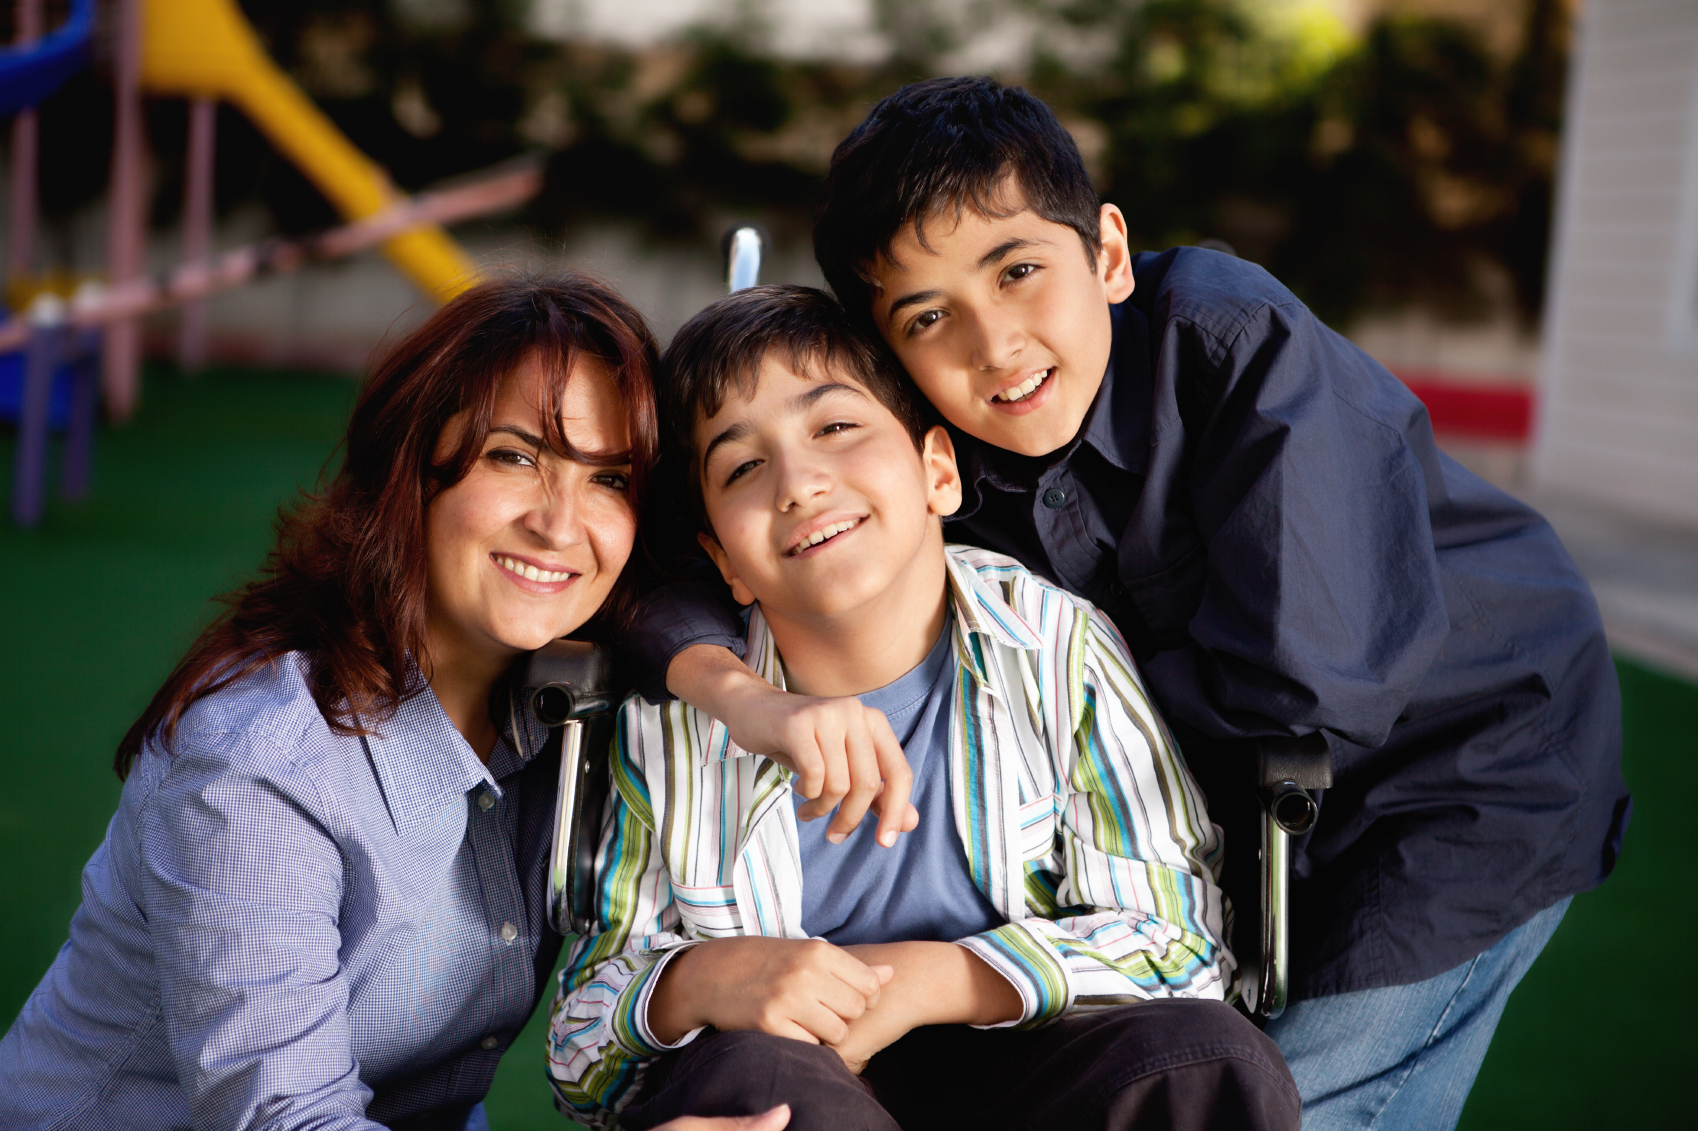 A young boy in a wheelchair with his brother and mother